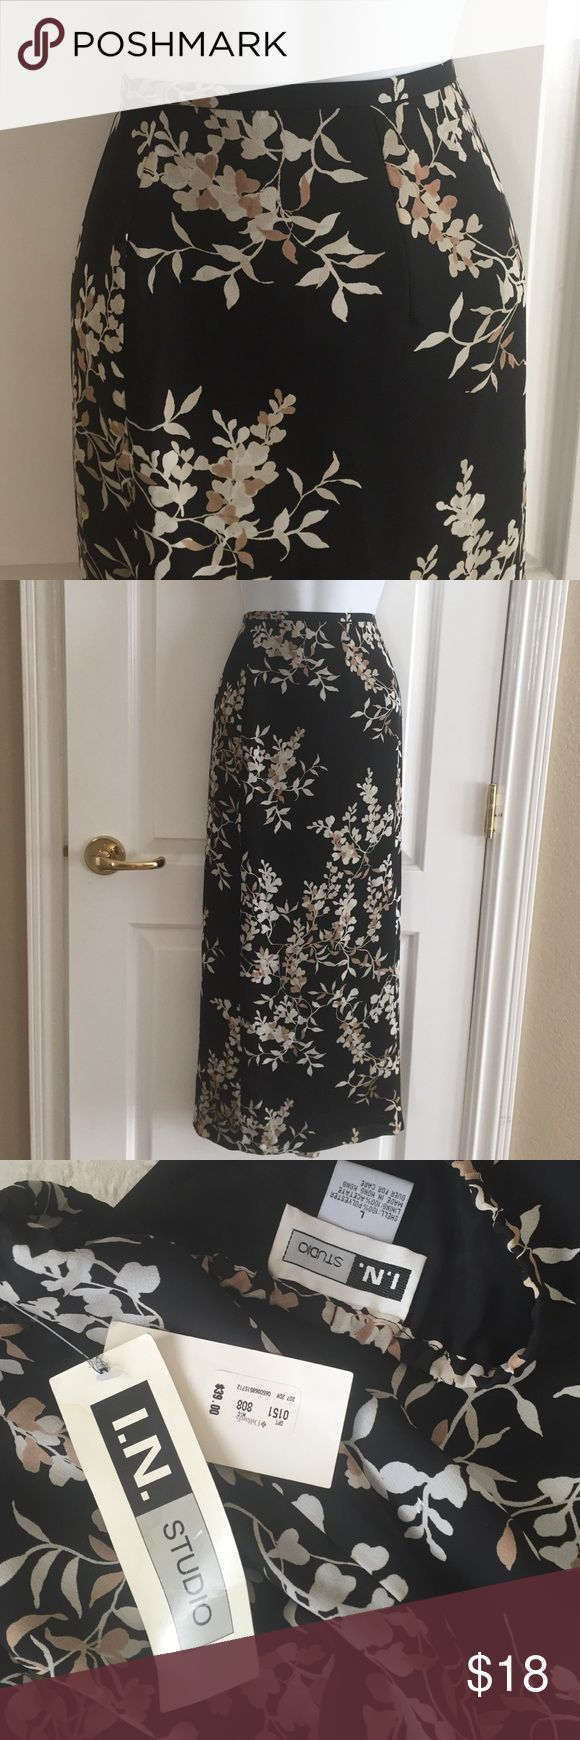 """NWT 👏🏻 Ladies Long Skirt NWT - neutral colored pattern long Skirt. Fully lined w 12"""" slit in back. Size L. Very Pretty🌷 Skirts Midi"""